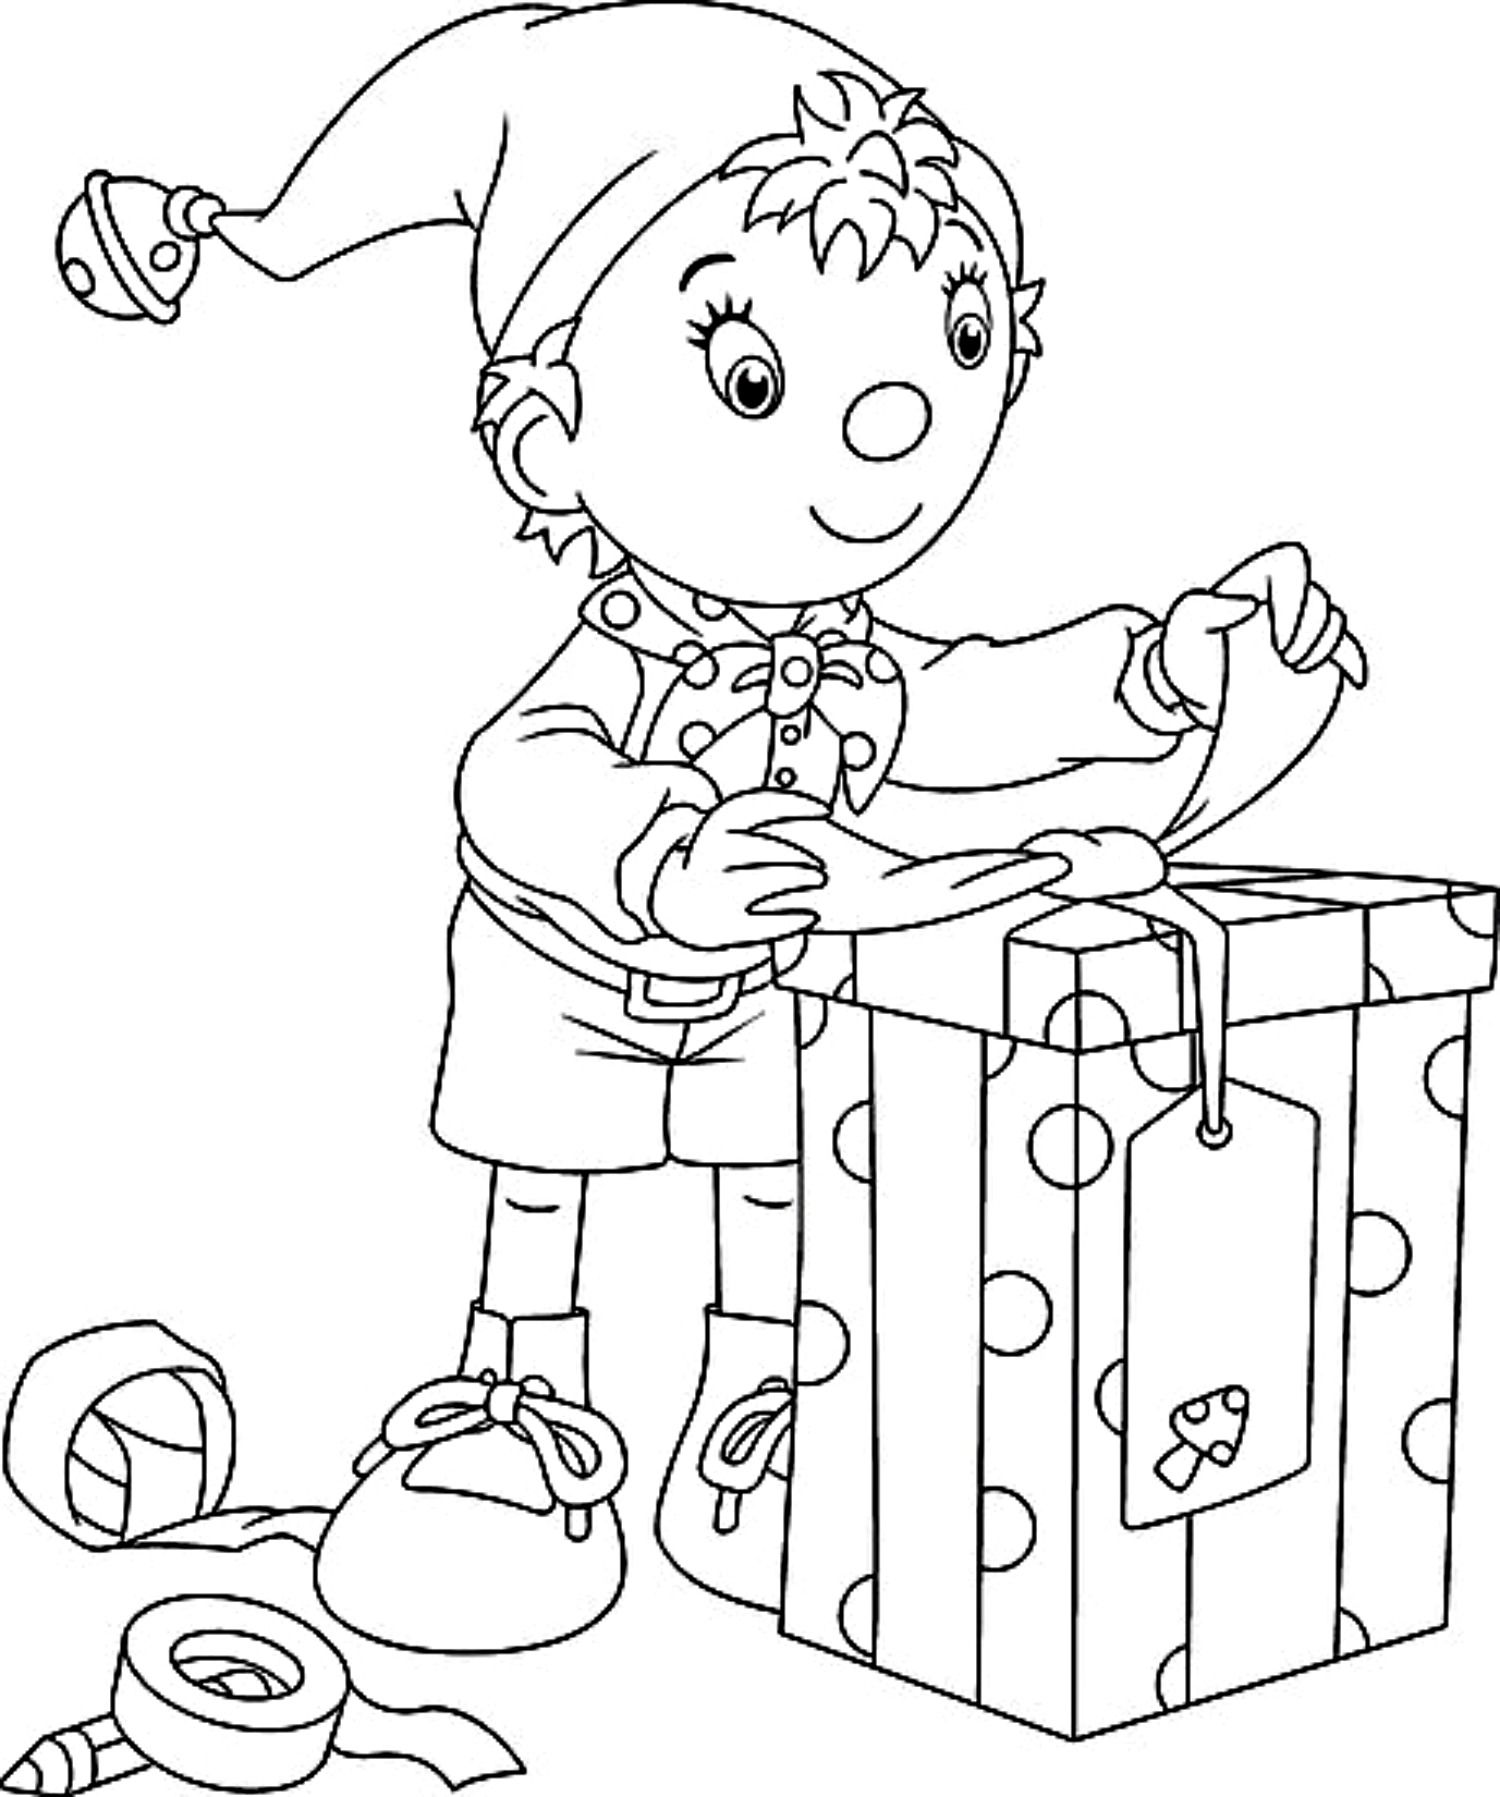 Christmas Elf Coloring Pages For Adults With CHRISTMAS COLORING PAGE Santa Song And Free Printable